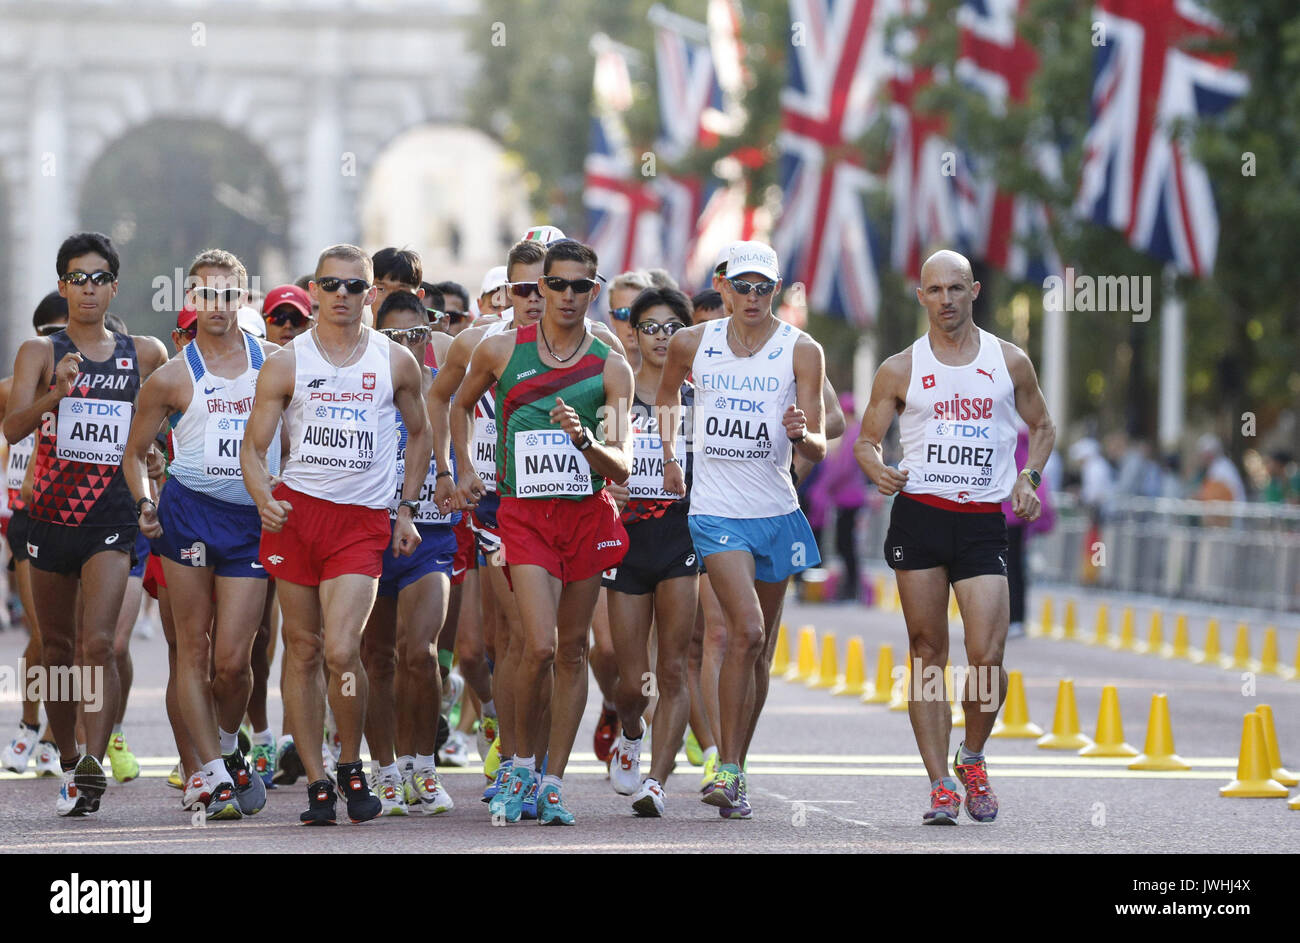 London, UK. 13th Aug, 2017.  Athletes compete during the 50km Race Walk at the IAAF World Athletics Championships, Stock Photo